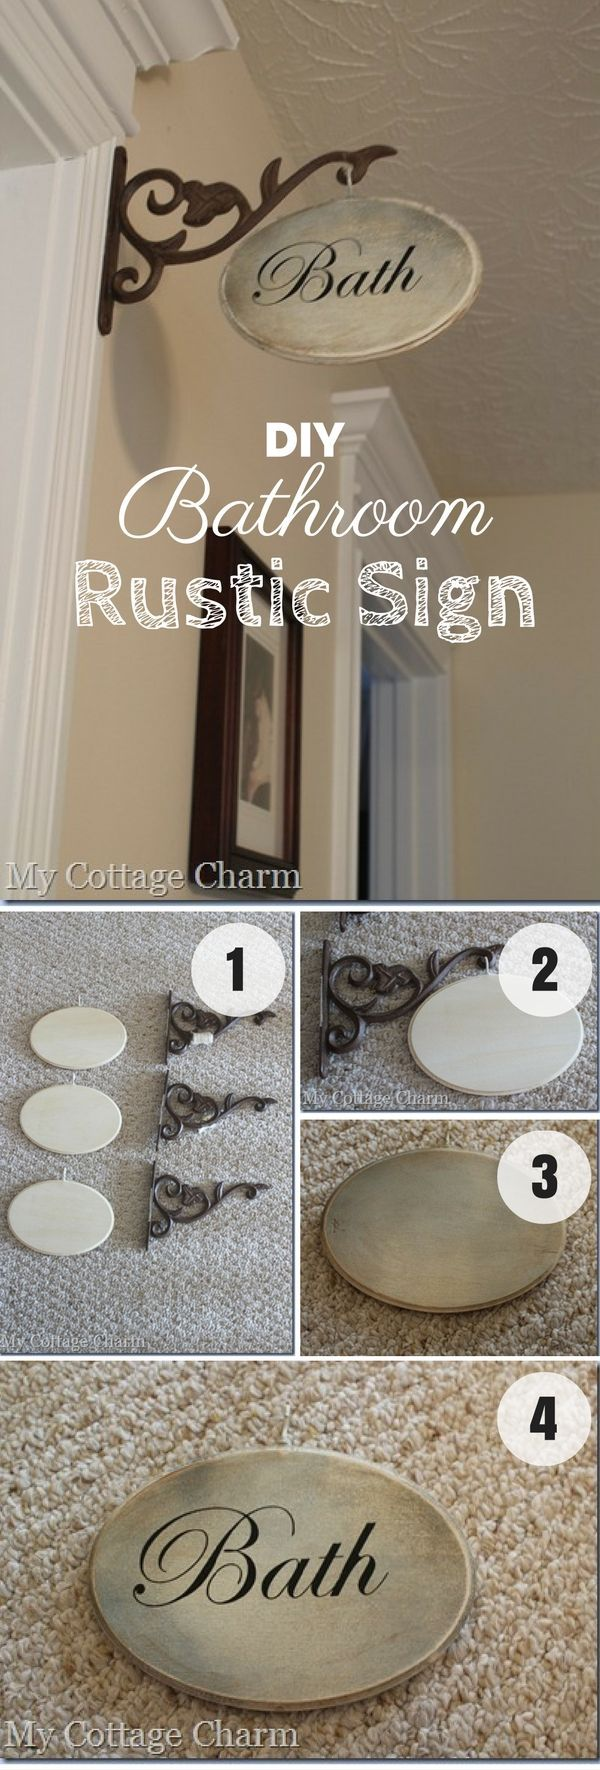 best 25 half bathroom decor ideas on pinterest half bathroom 20 gorgeous diy rustic bathroom decor ideas you should try at home